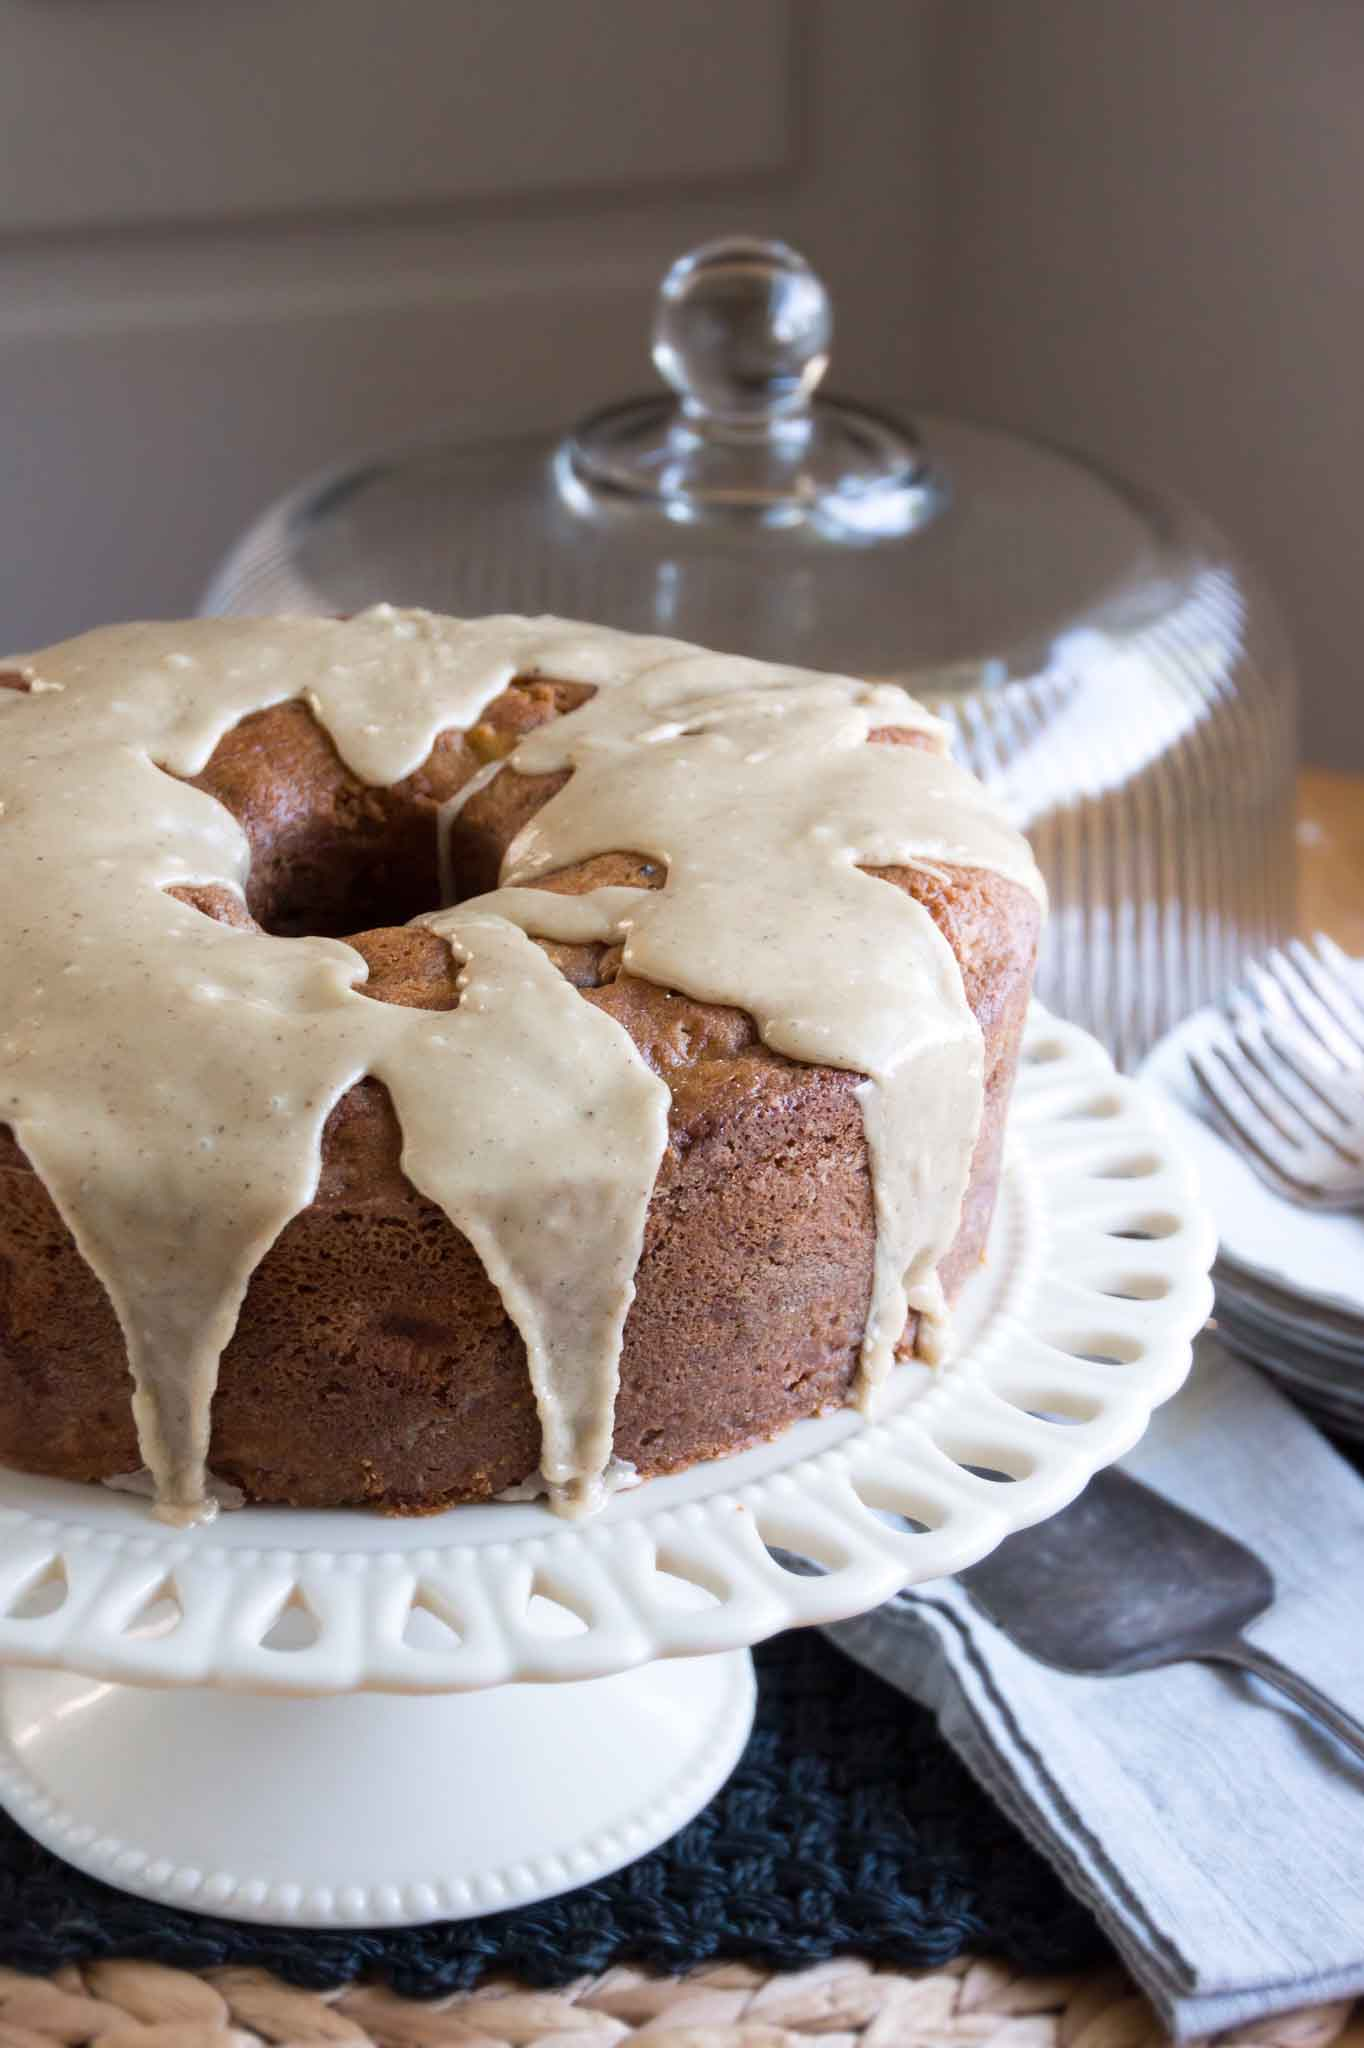 Brown Butter Caramel Apple Cake